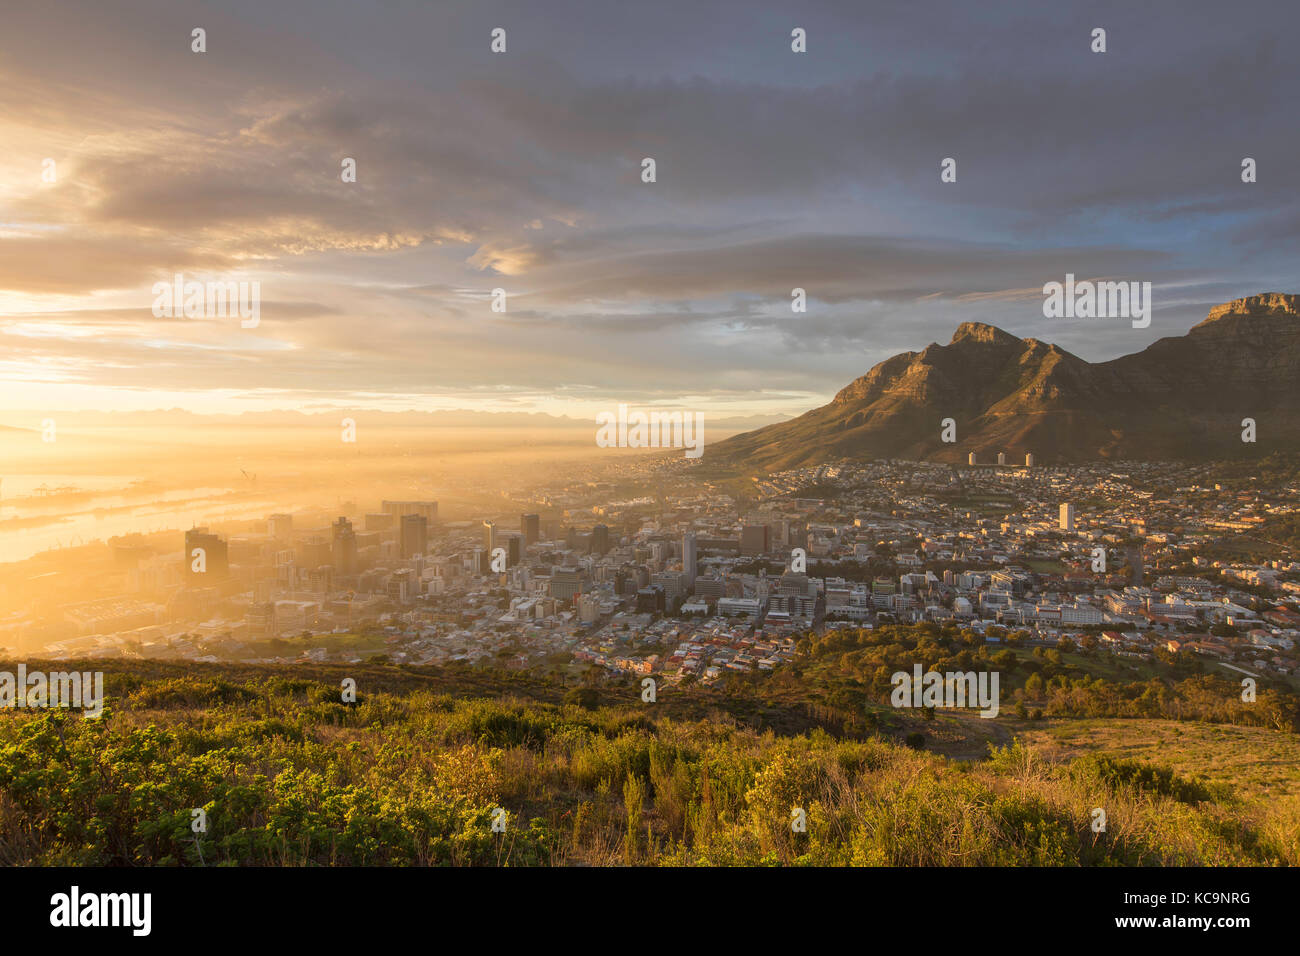 Table Mountain and City Bowl at dawn, Cape Town, Western Cape, South Africa - Stock Image